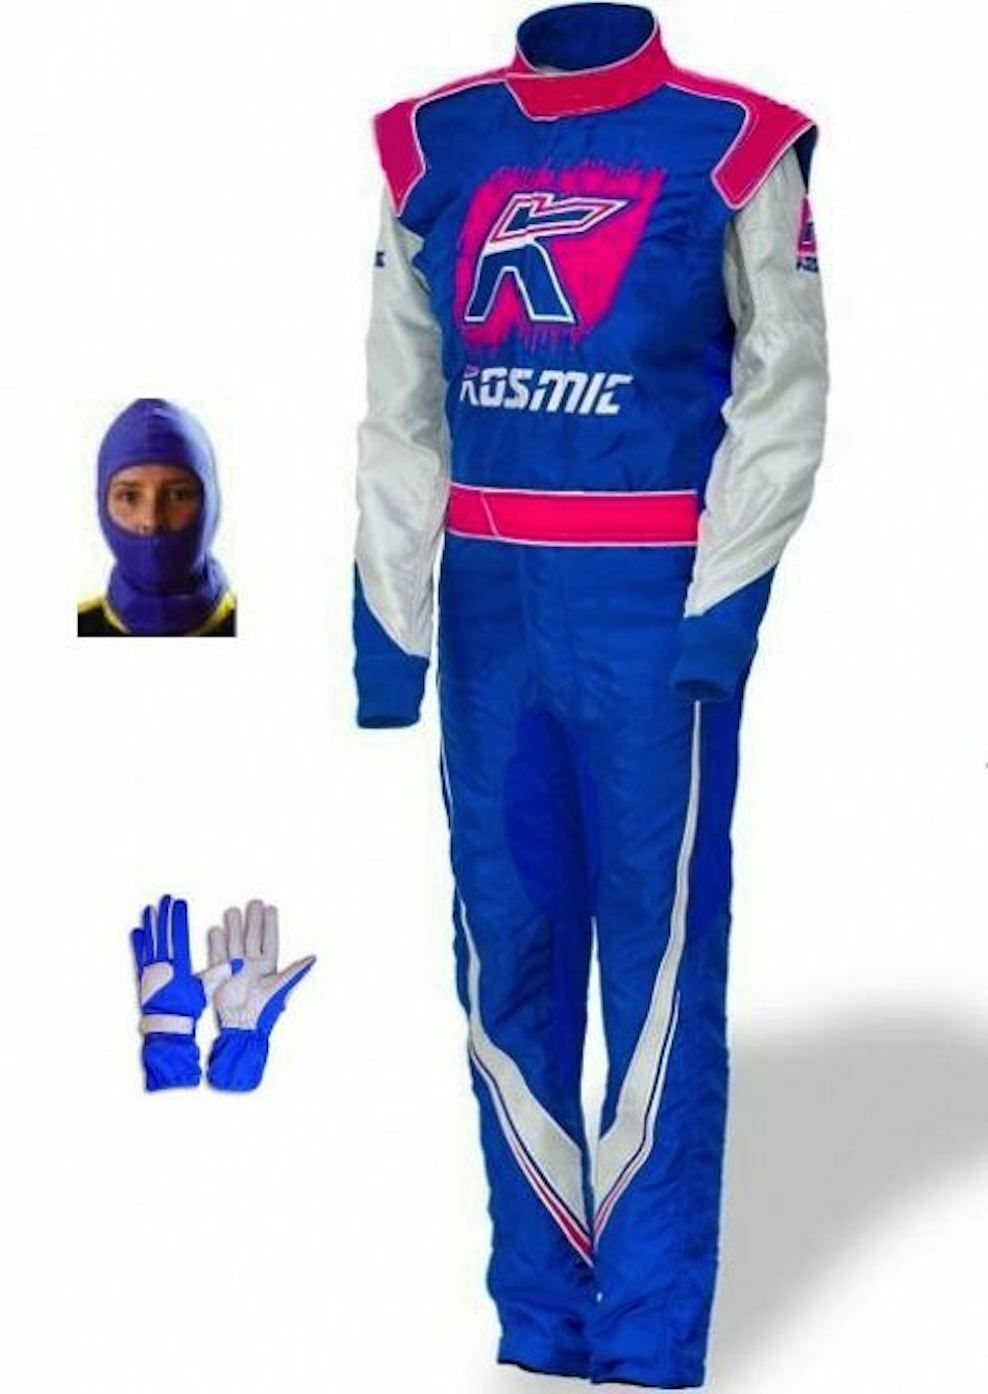 Kosmic kart race CIK FIA level 2 suit 2013 style (free gifts)